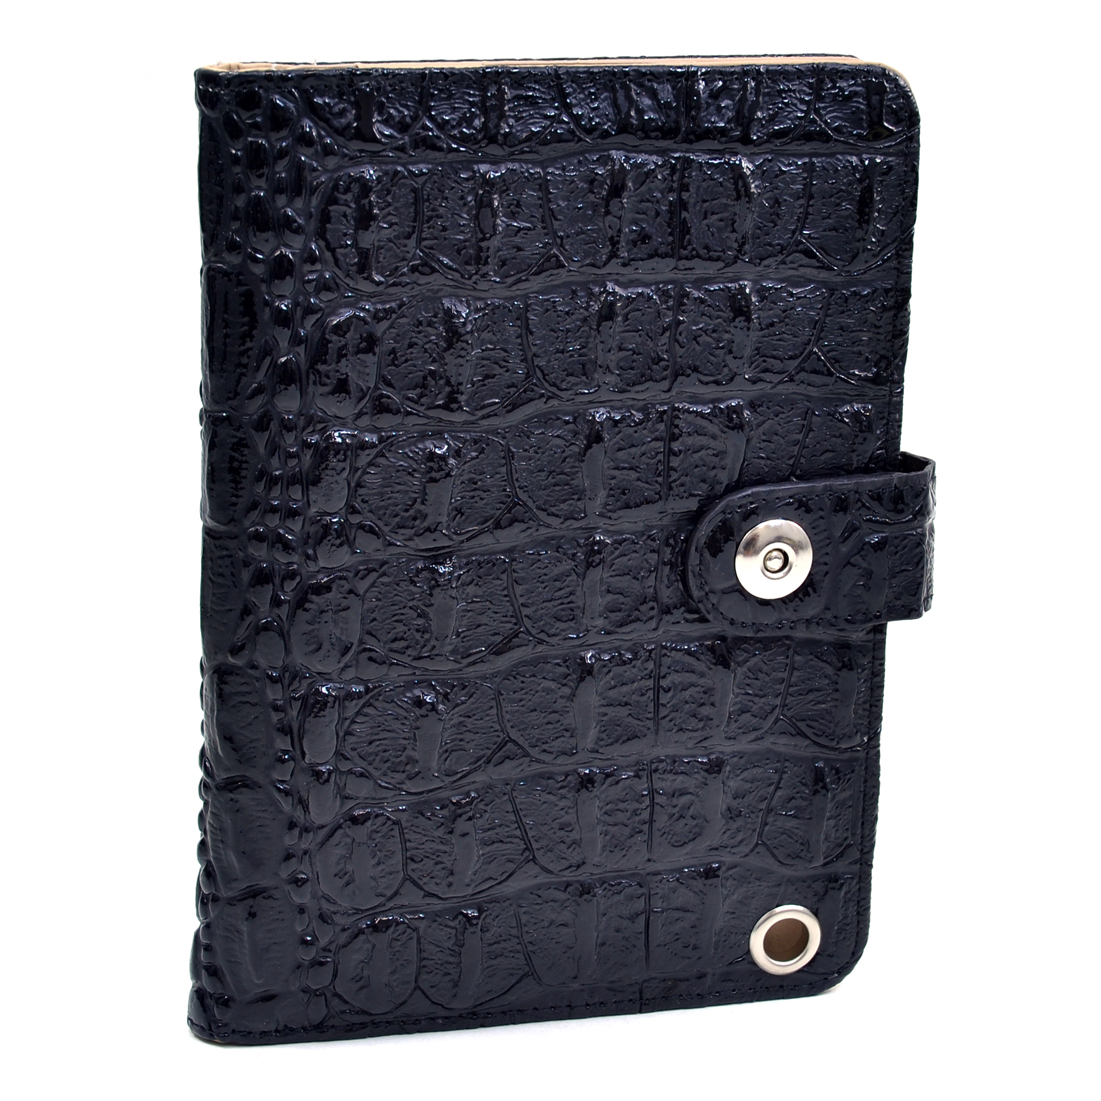 Dasein® Patent Faux Crocoskin iPad Mini Case New Smart Stand Cover for iPad Mini